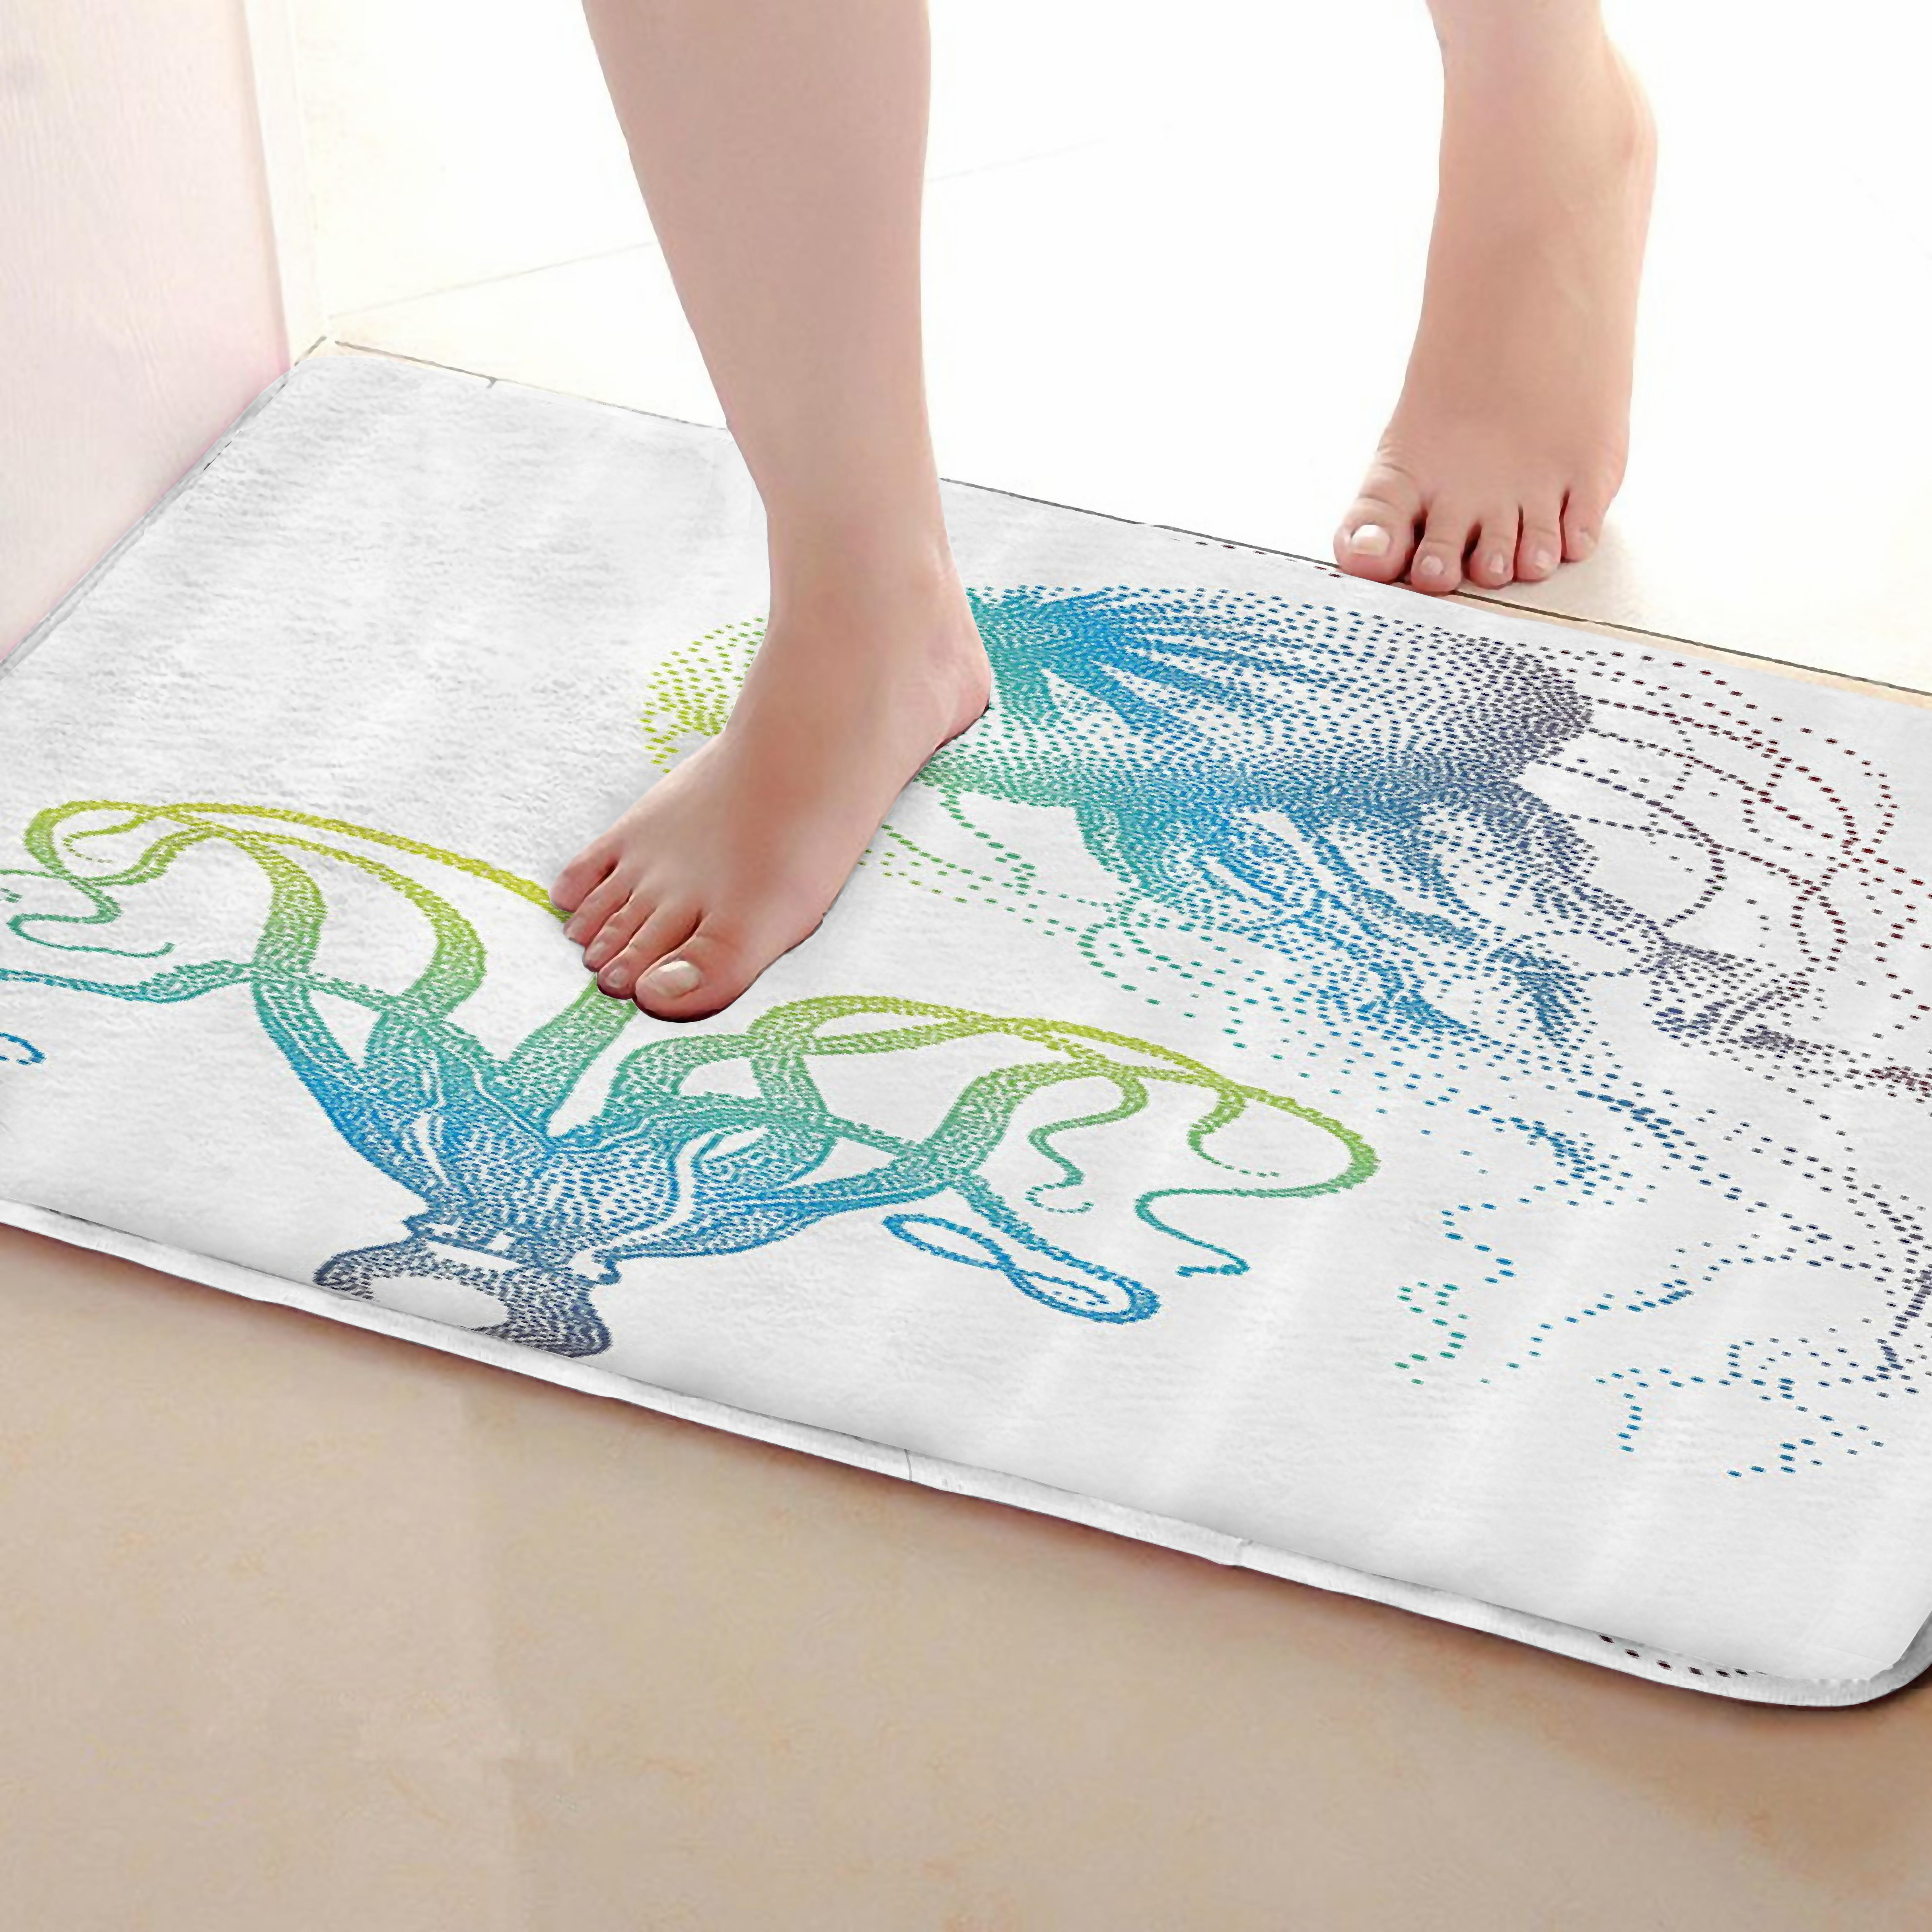 Jellyfish Style Bathroom Mat,Funny Anti skid Bath Mat,Shower Curtains Accessories,Matching Your Shower Curtain